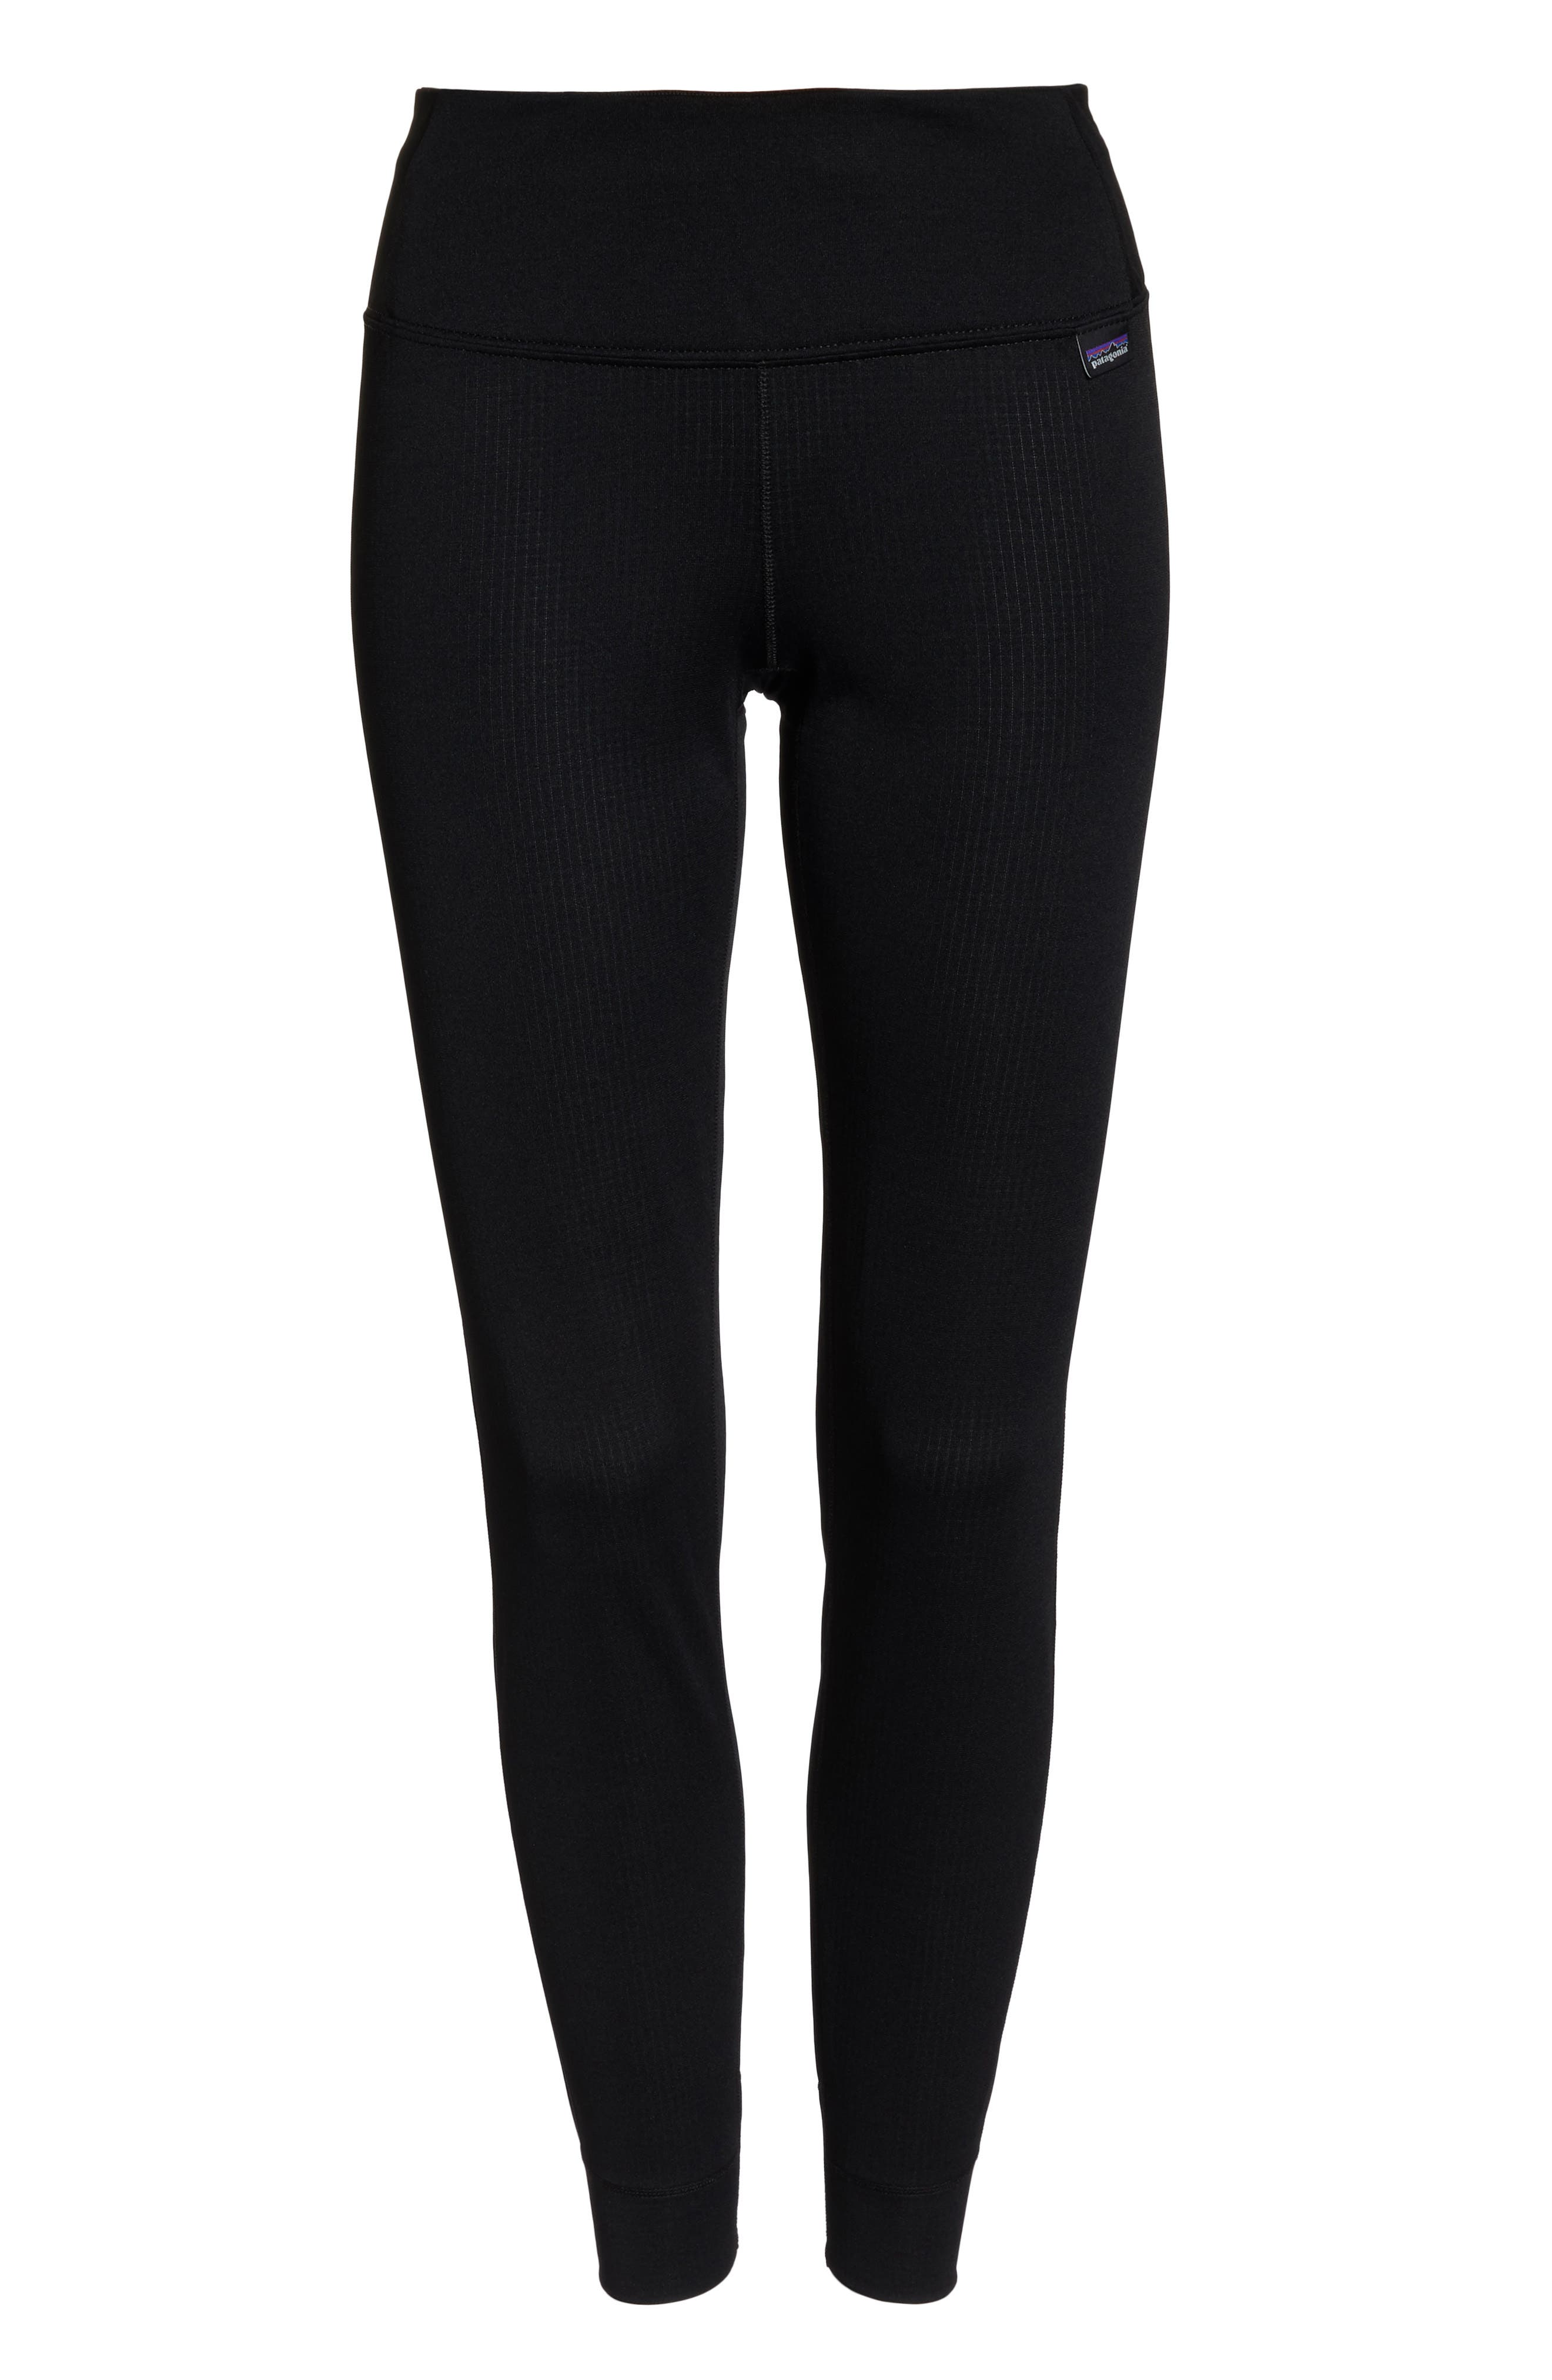 PATAGONIA, Capilene Midweight Base Layer Tights, Alternate thumbnail 7, color, BLACK